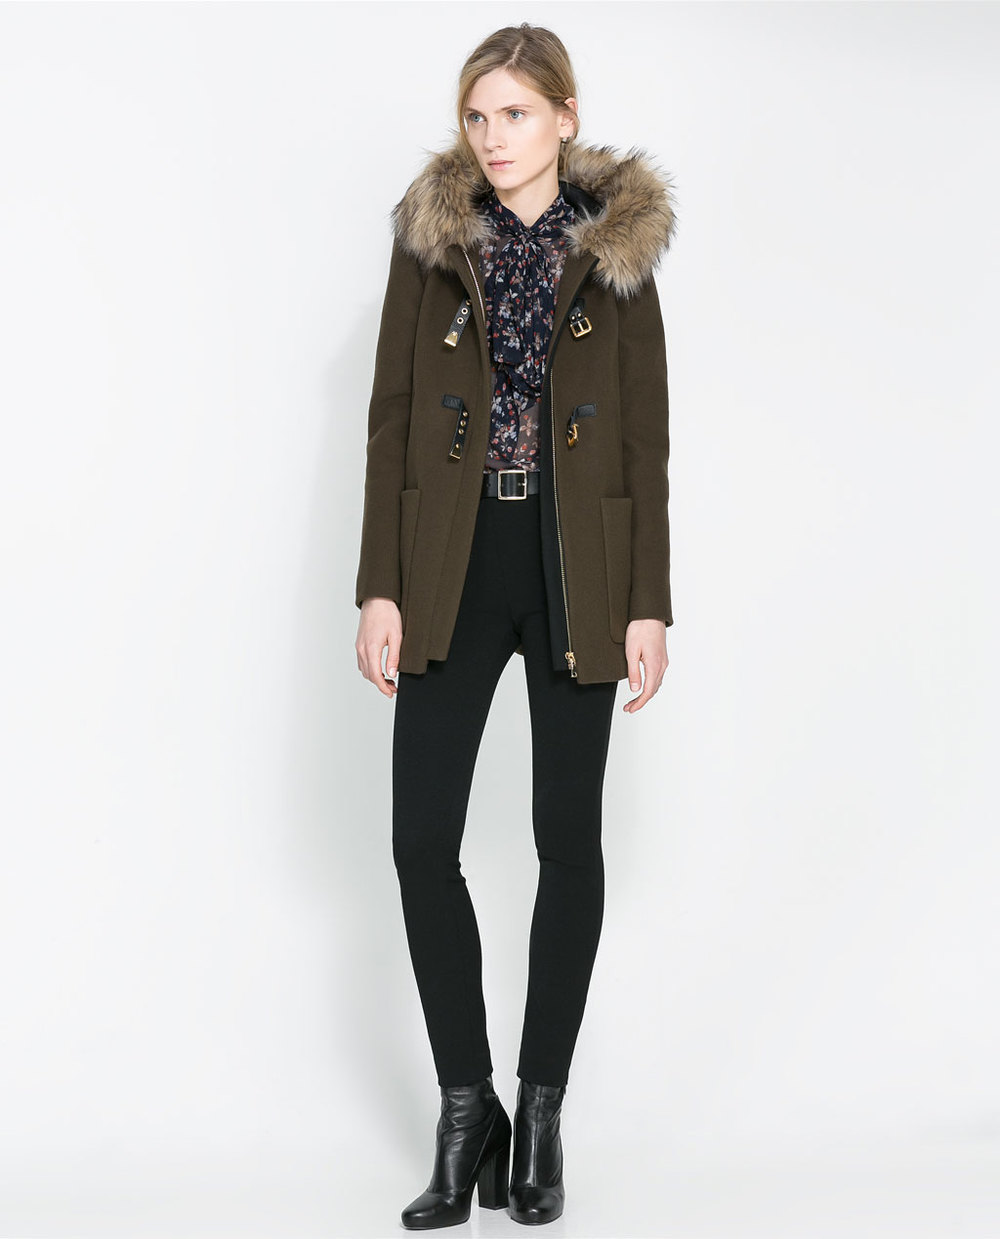 Zara Duffle Coat with Fur Trimmed Hood